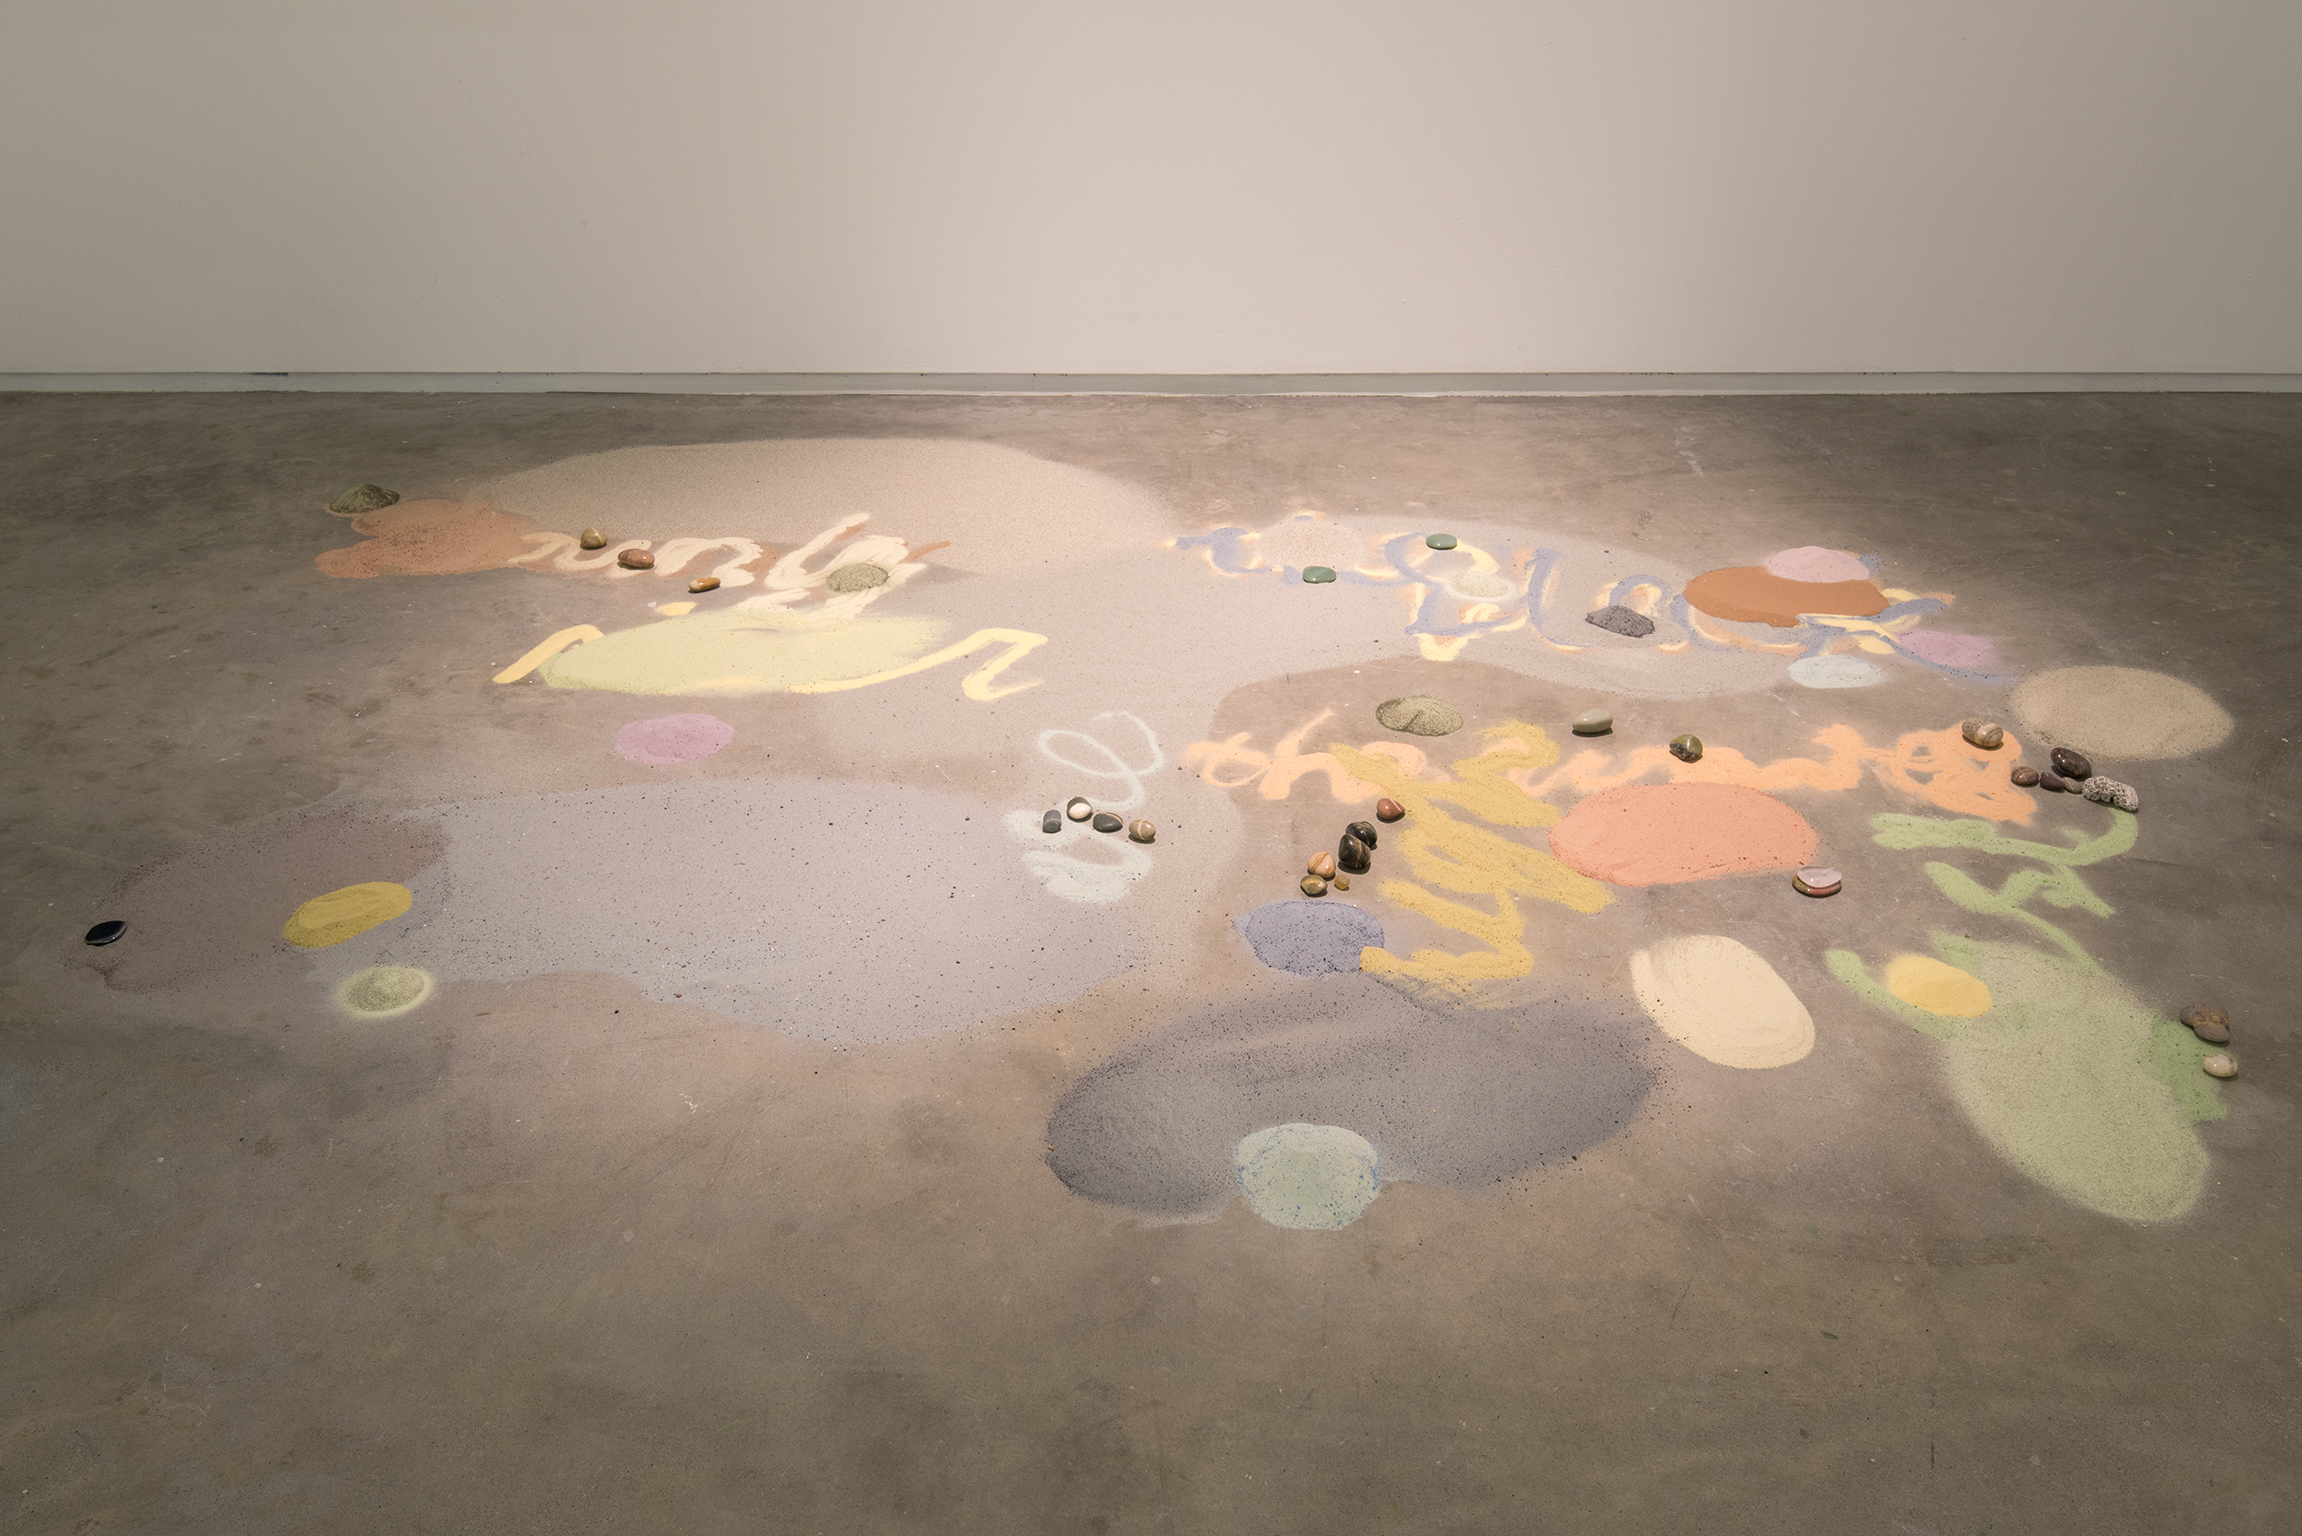 Christina Mackie, Interzonal, 2002–2012, mixed media, dimensions variable by